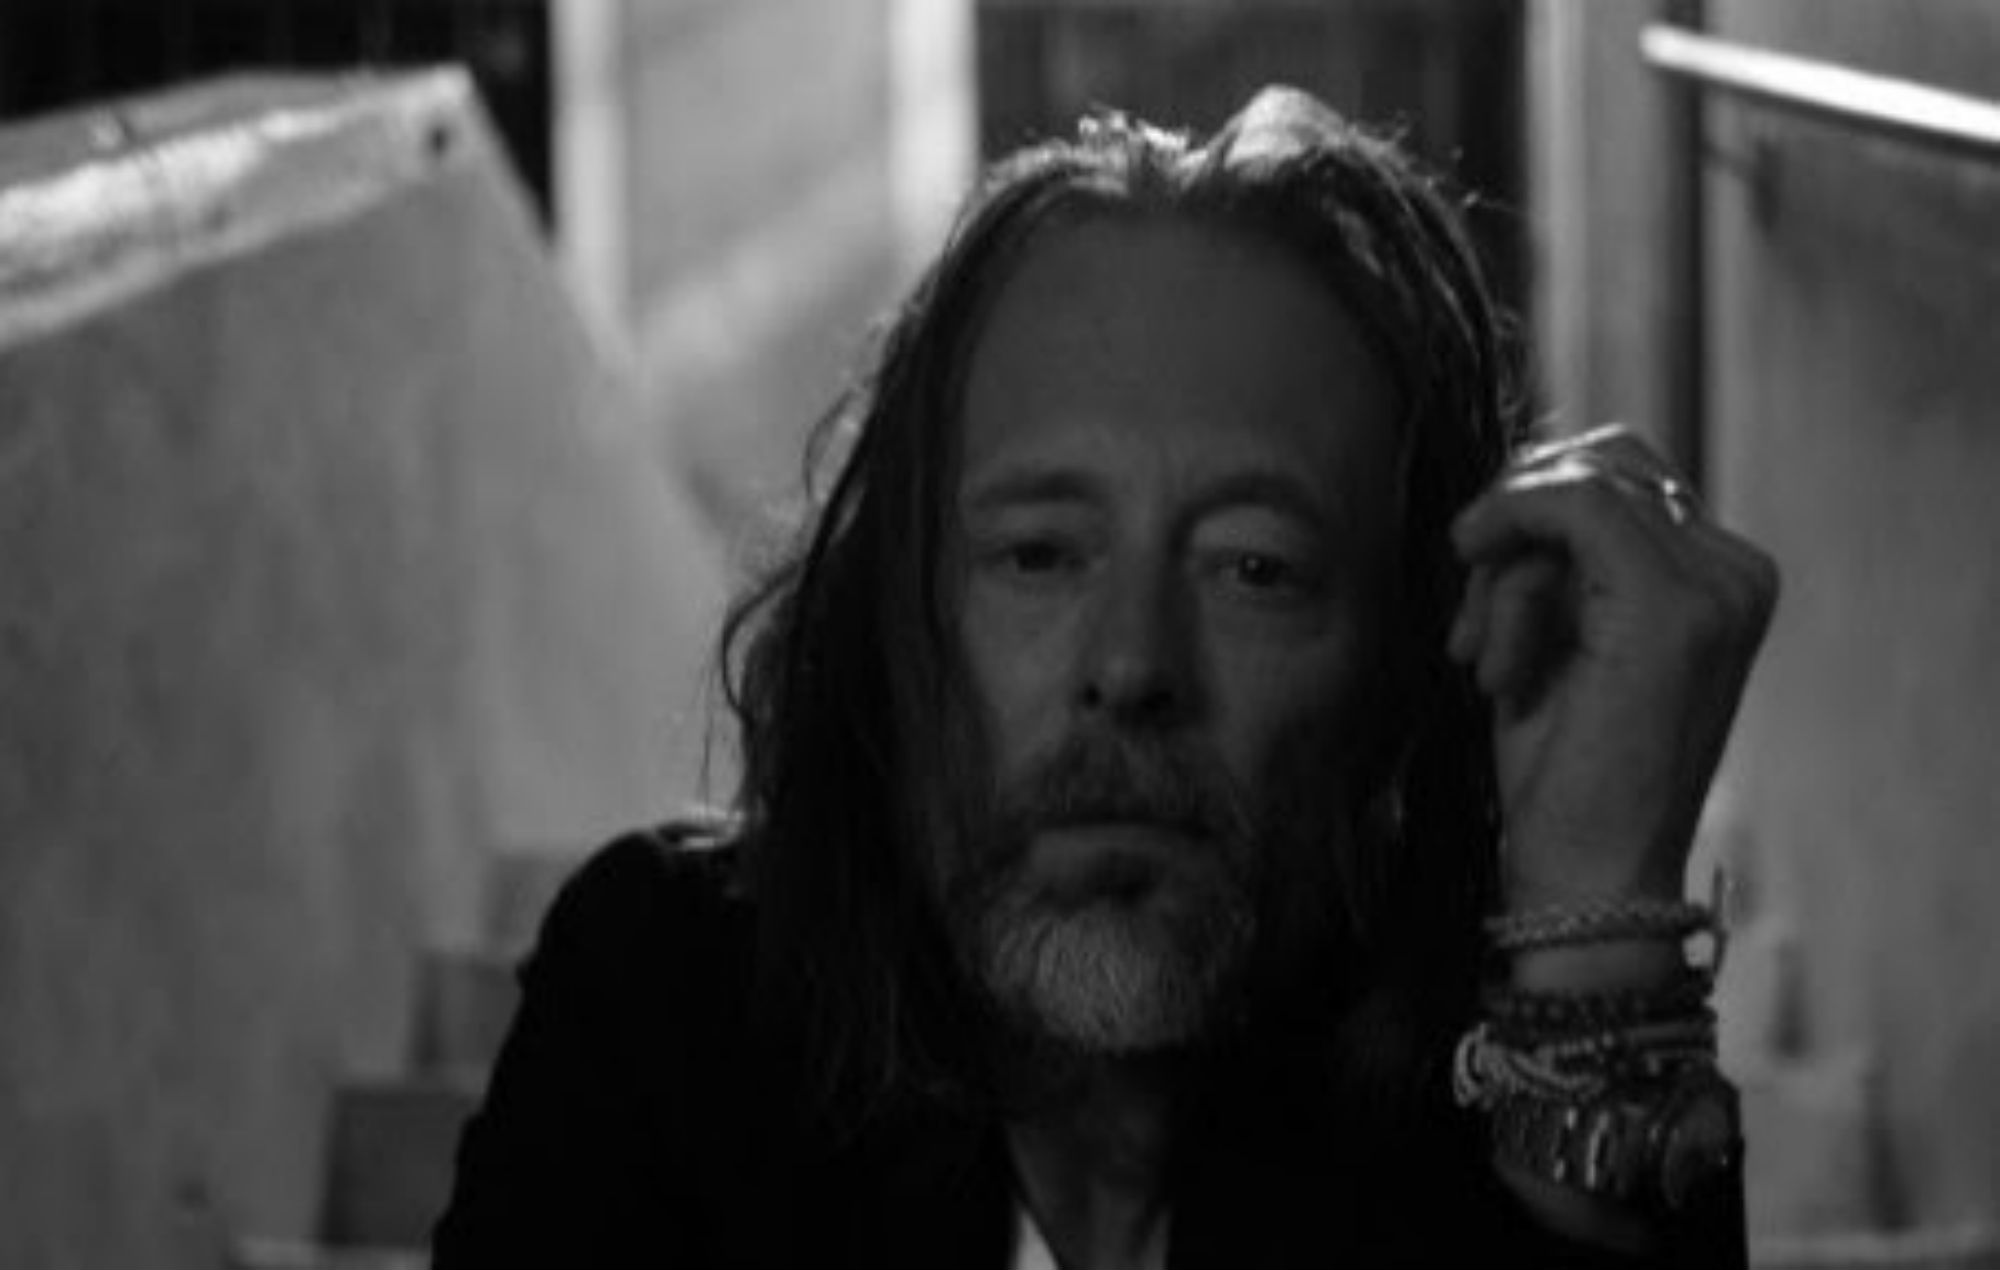 thom yorke reveals haunting new offering has ended from